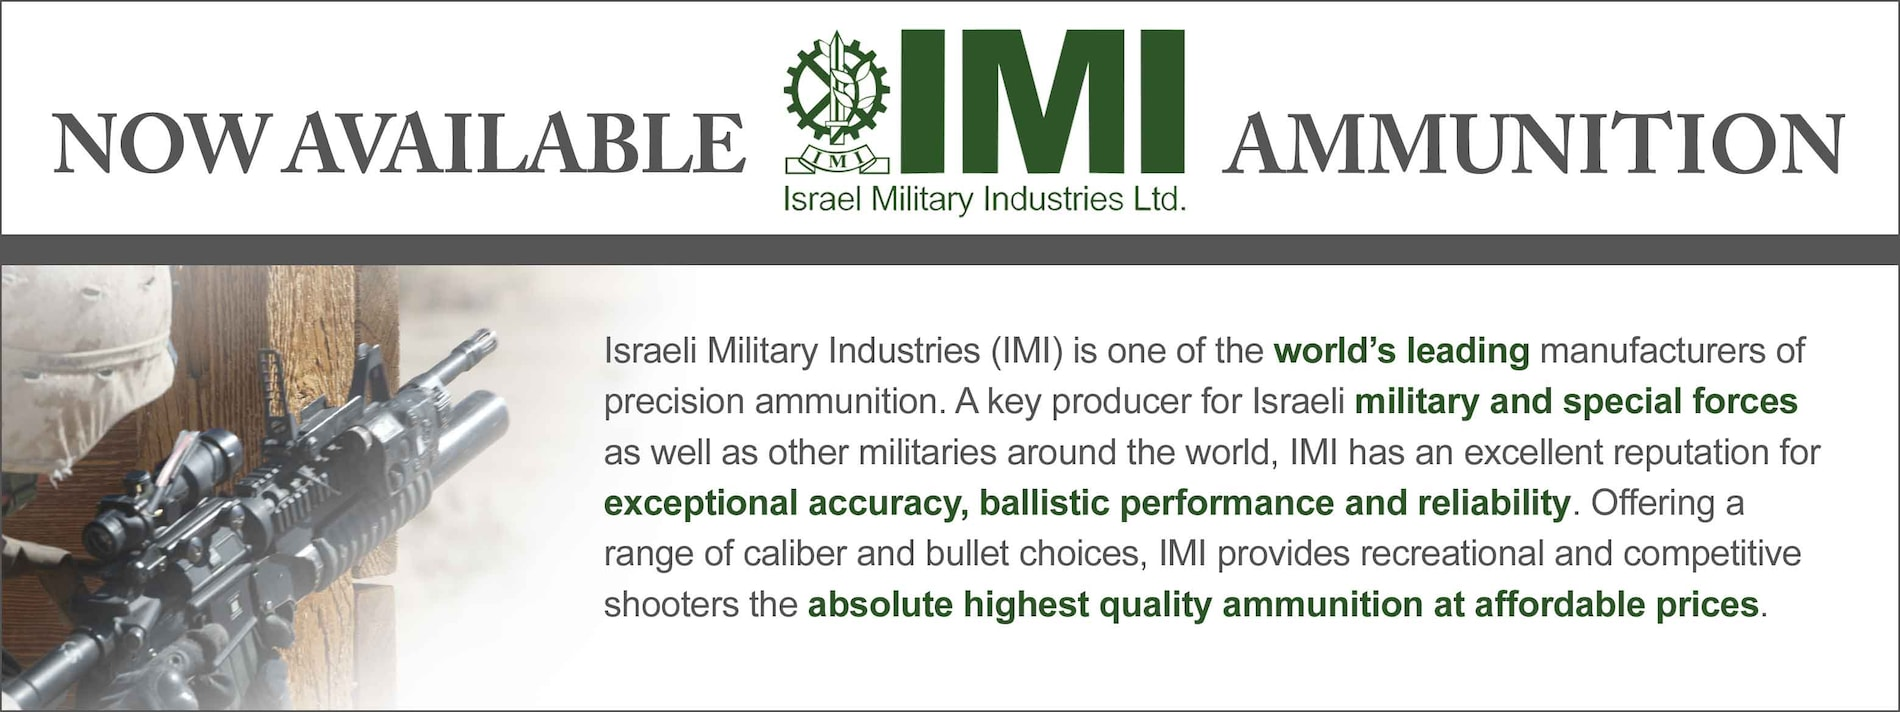 IMI Ammunition Now Available